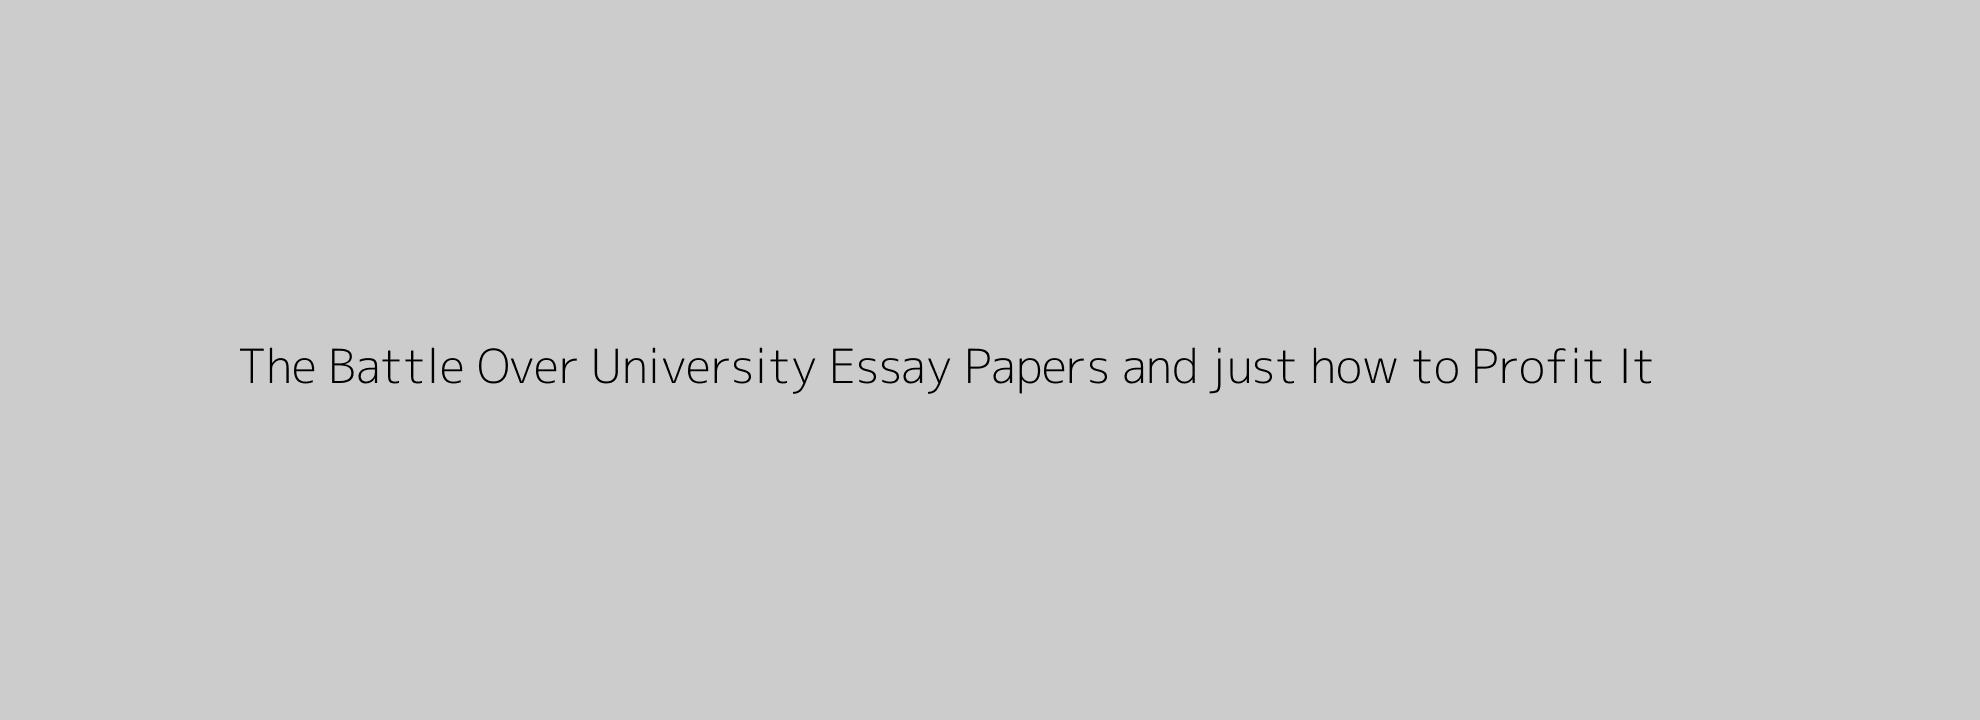 The Battle Over University Essay Papers and just how to Profit It